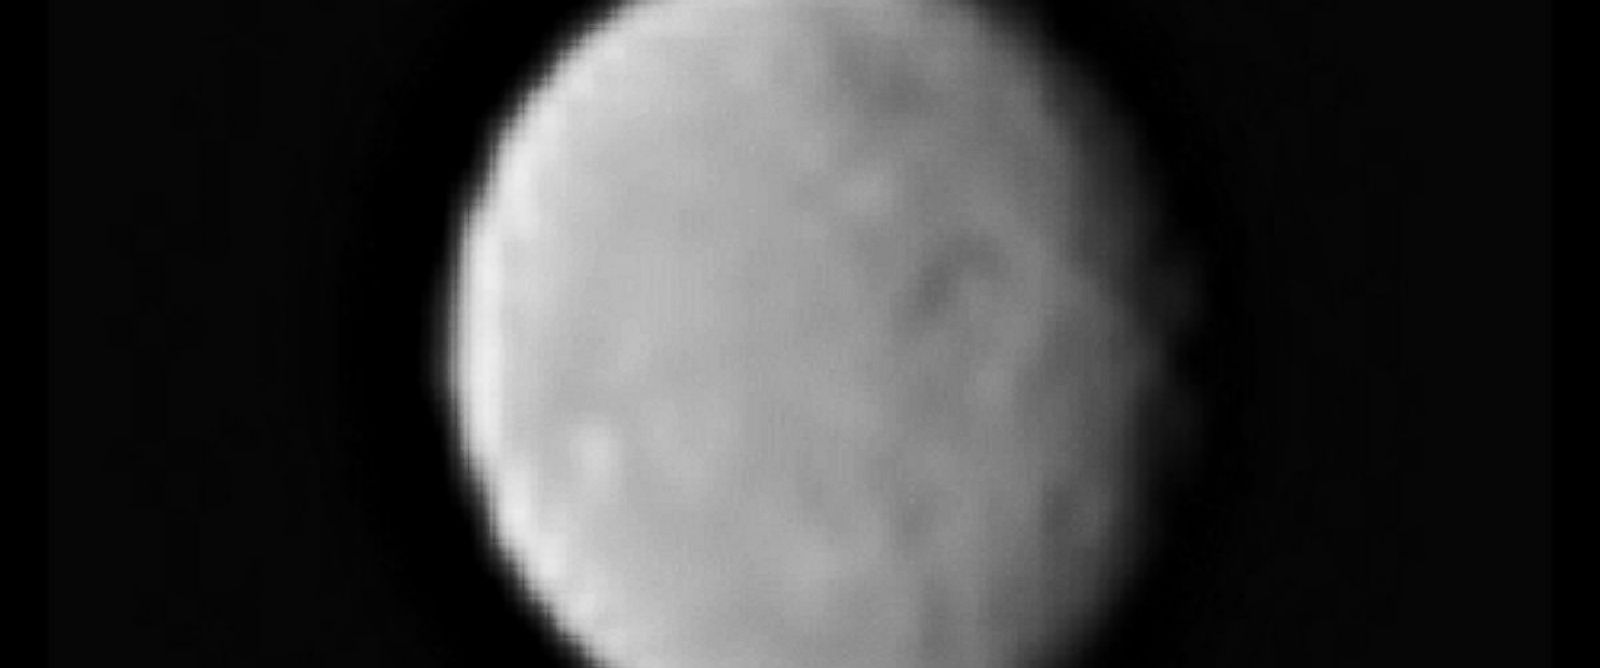 PHOTO: This processed image, taken on Jan. 13, 2015, shows the dwarf planet Ceres as seen from the Dawn spacecraft. The image hints at craters on the surface of Ceres. Dawns framing camera took this image at 238,000 miles from Ceres.